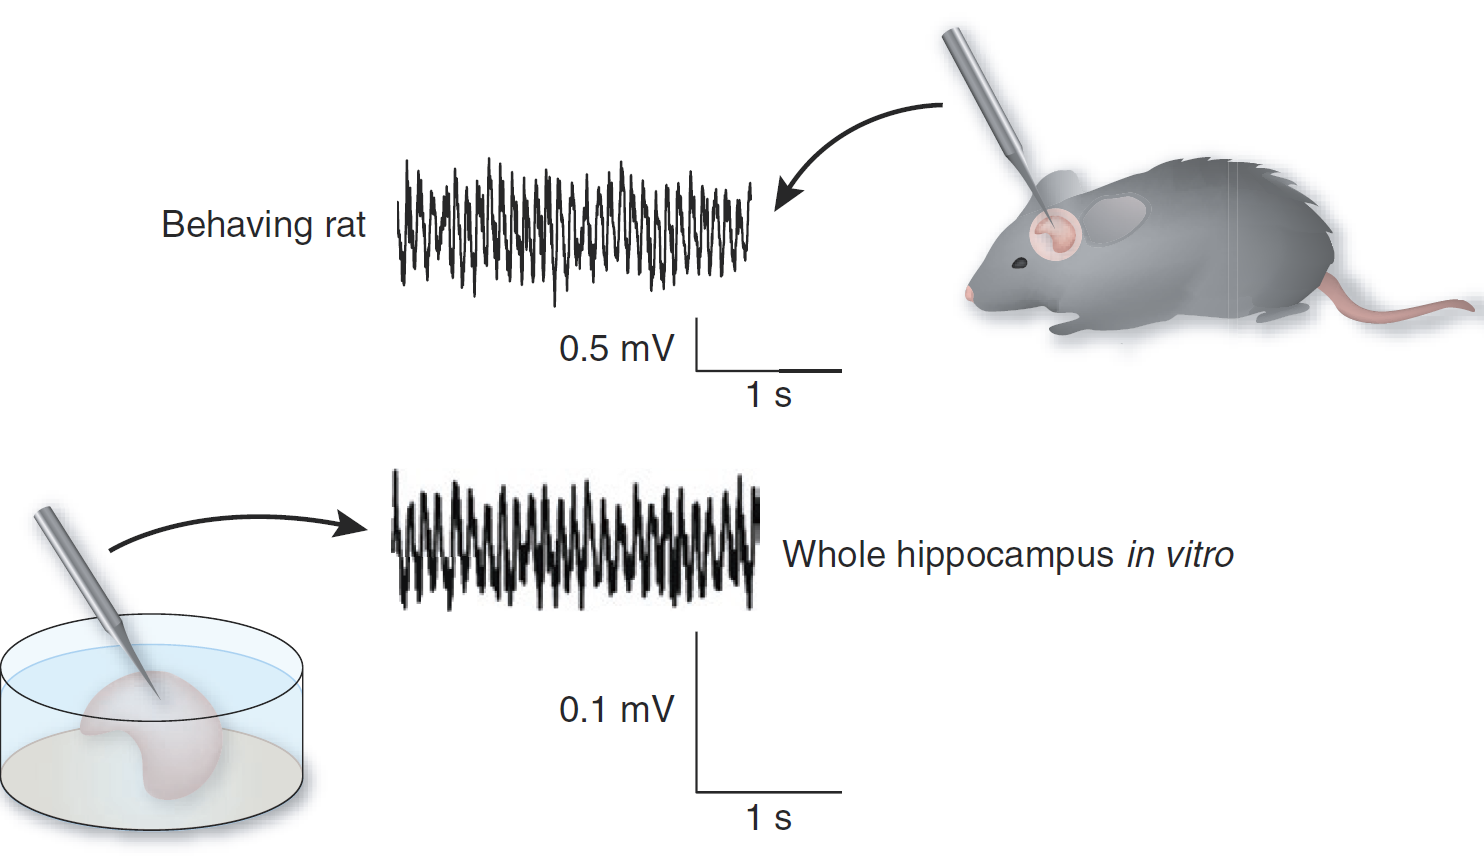 Diagram showing the theta recorded from the complete hippocampus in vitro and that recorded in vivo showing the surprising resemblance in the signal (adapted from Colgin and Moser's News and Views in Nature Neuroscience, 2009)